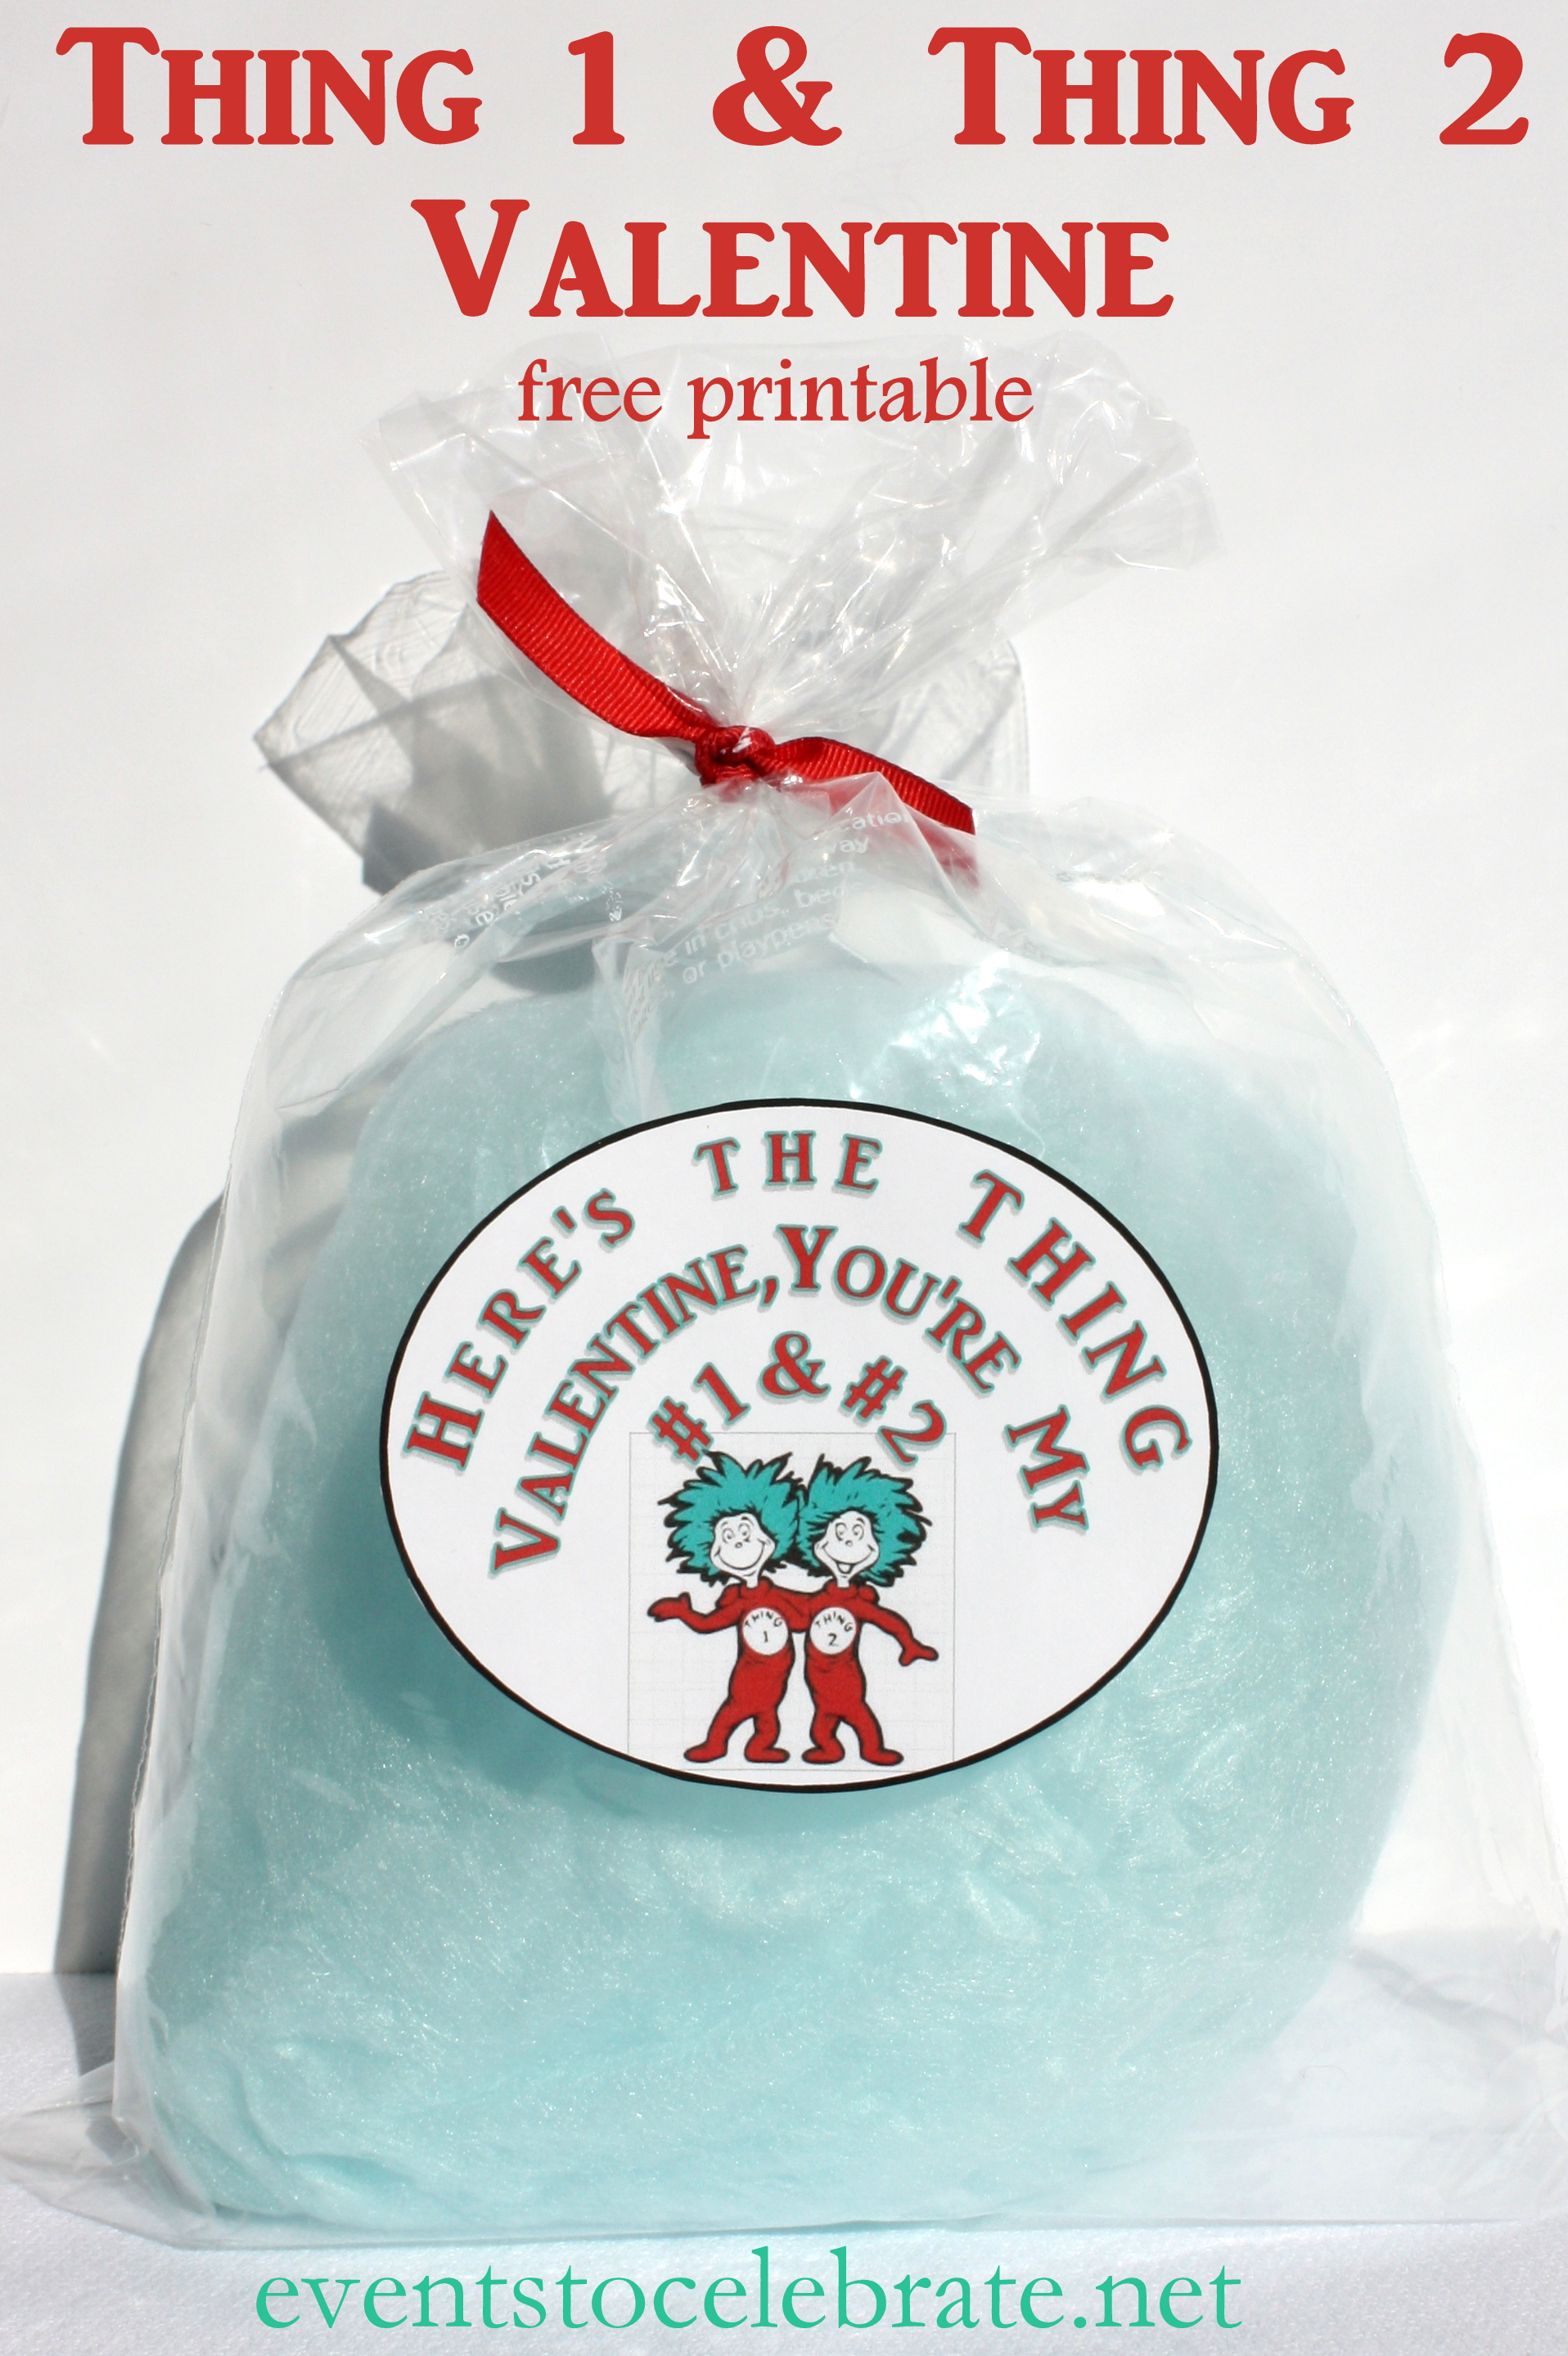 Dr Seuss Thing 1 and Thing 2 Valentine Free Printable - eventstocelebrate.net